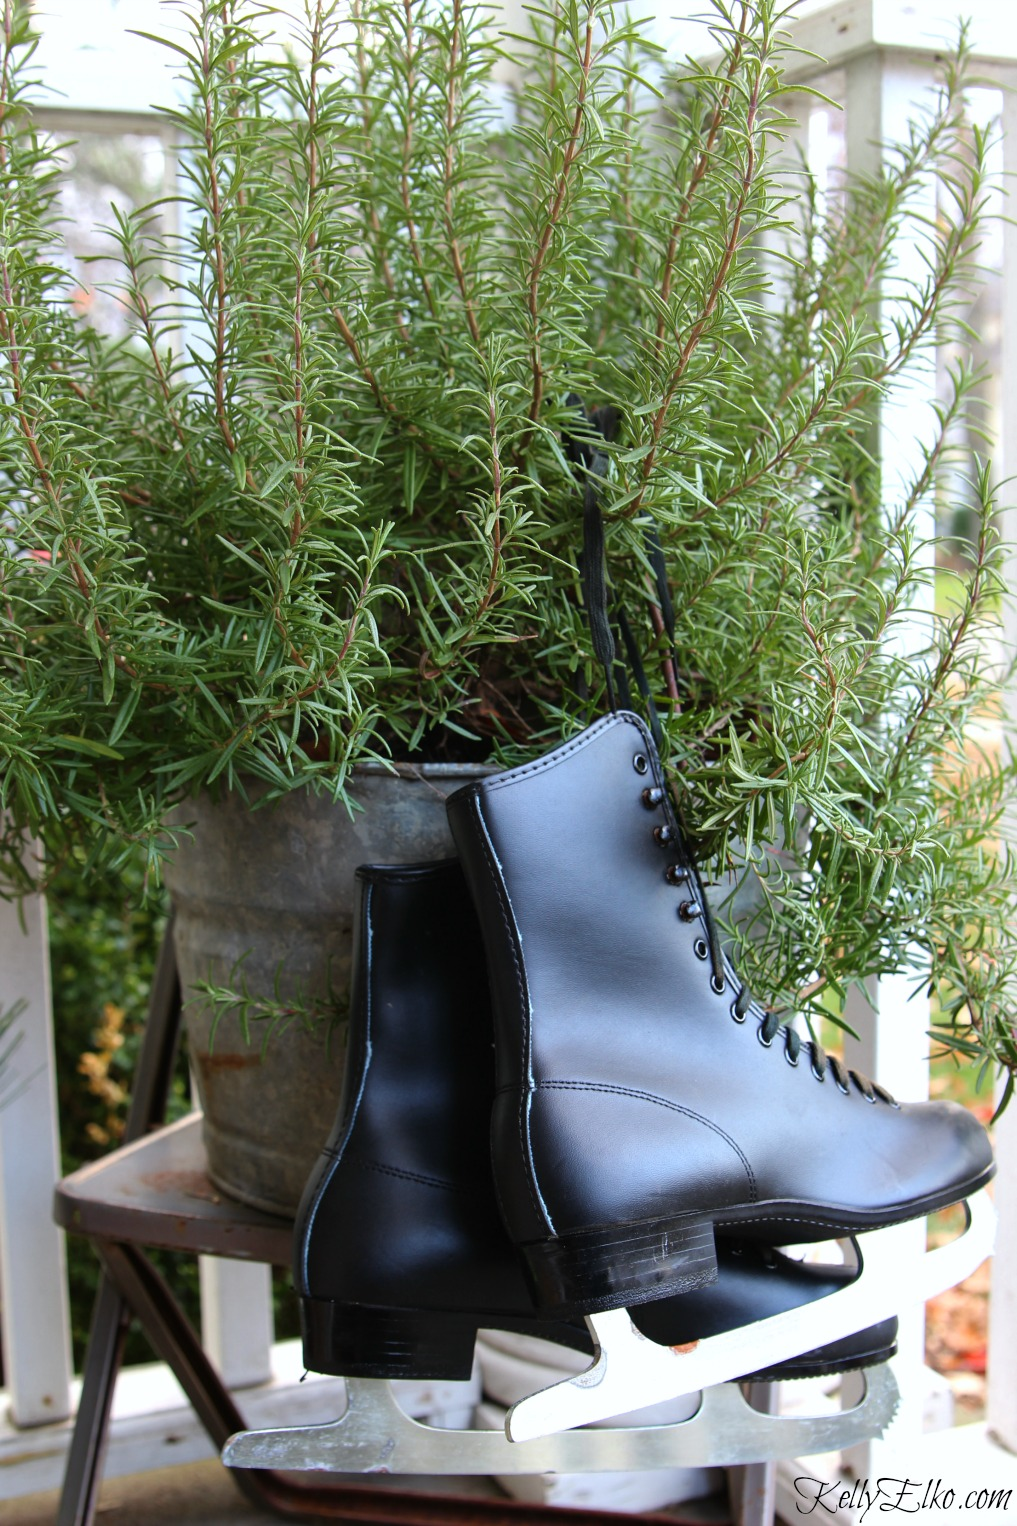 Tie an old pair of ice skates to a planter on this Christmas porch kellyelko.com